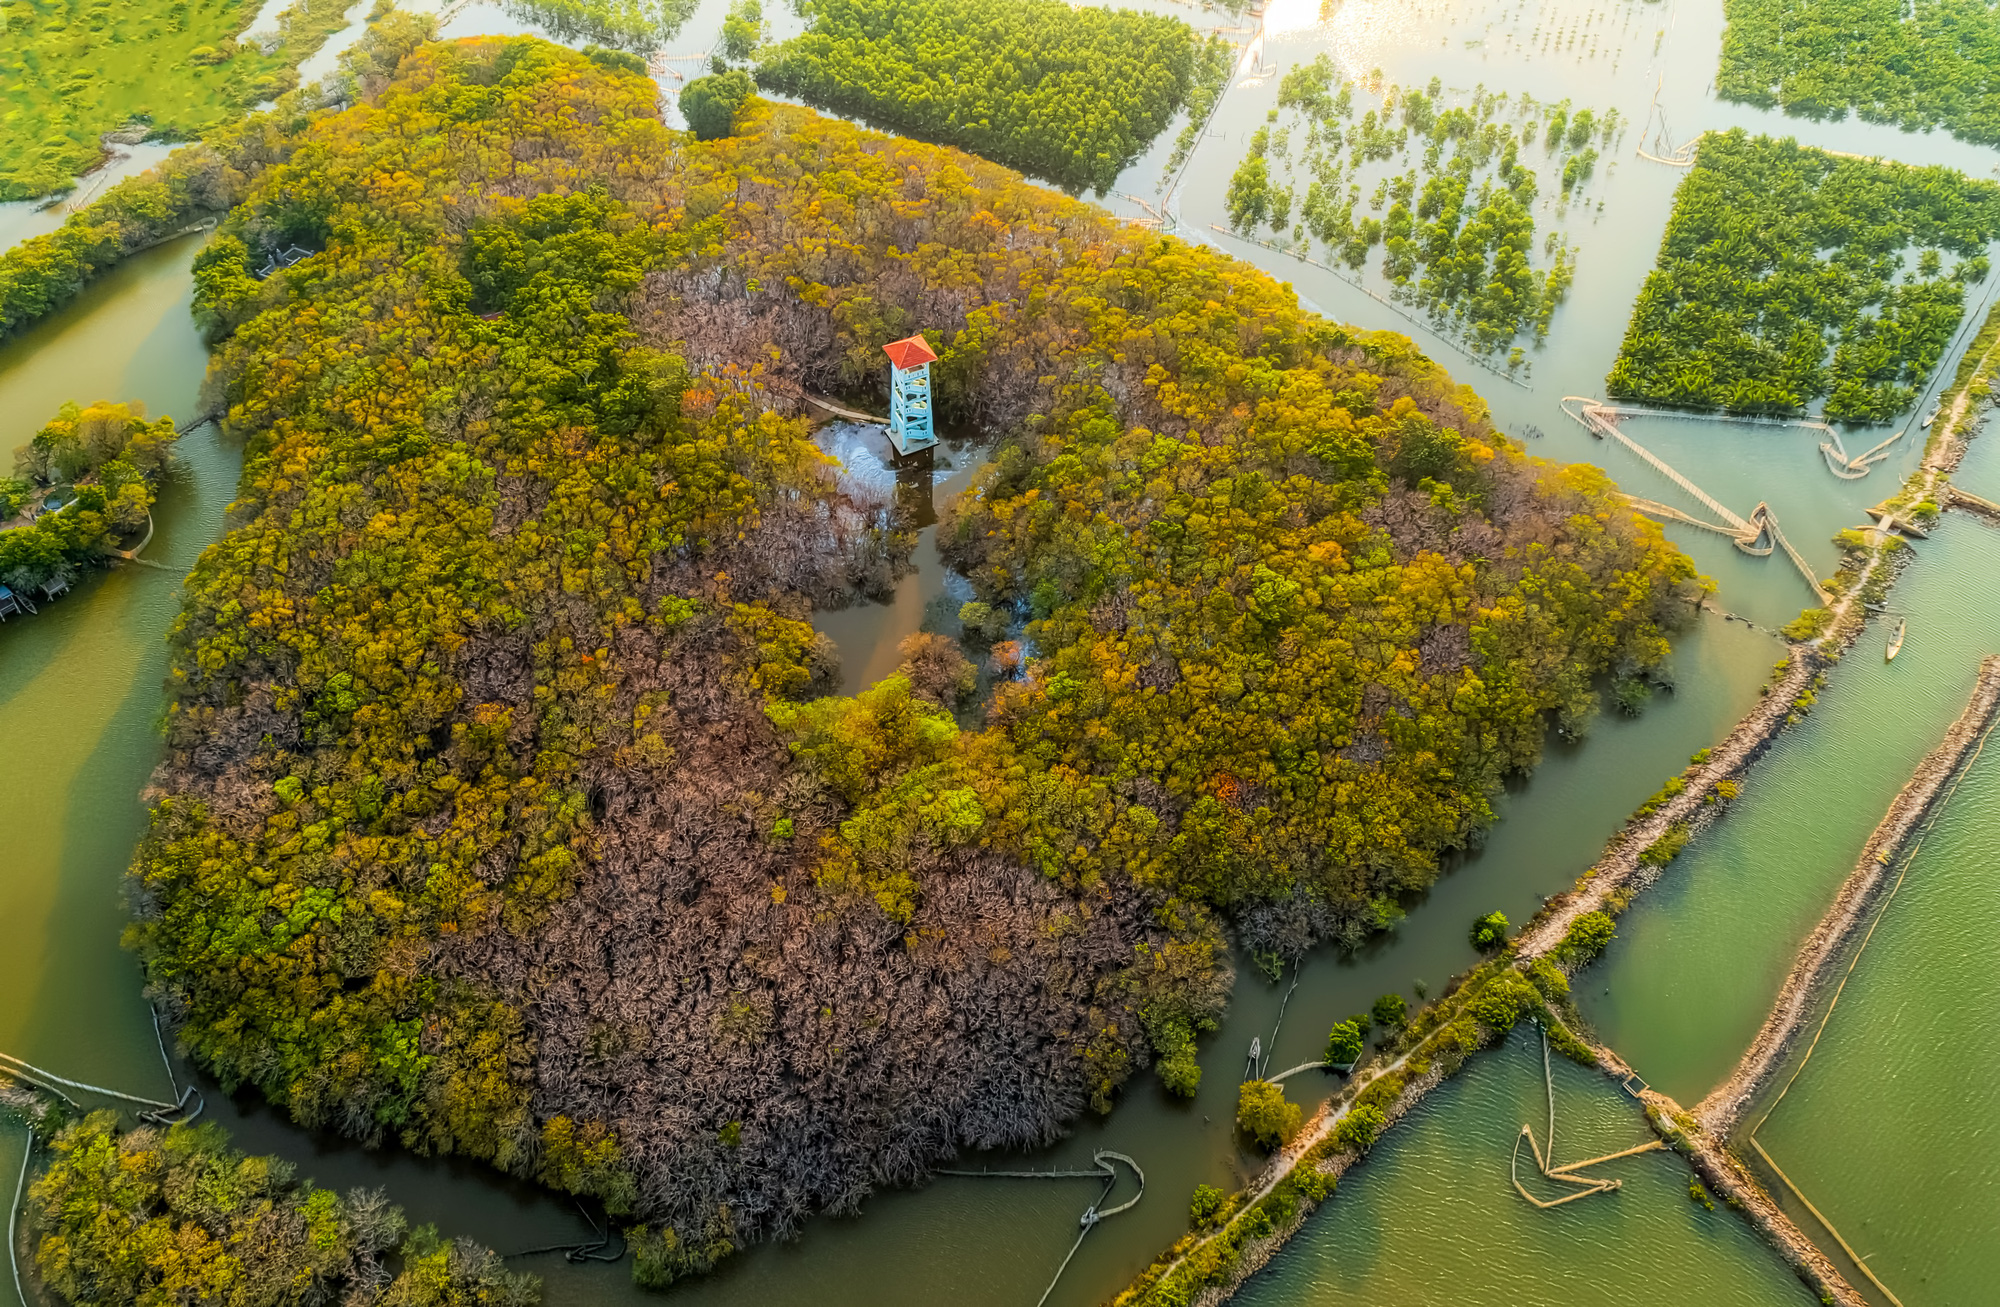 An aerial photo captures a part of Ru Cha mangrove forest ecosystem in Huong Tra District, Thua Thien-Hue Province, Vietnam. Photo: Kelvin Long / Tuoi Tre